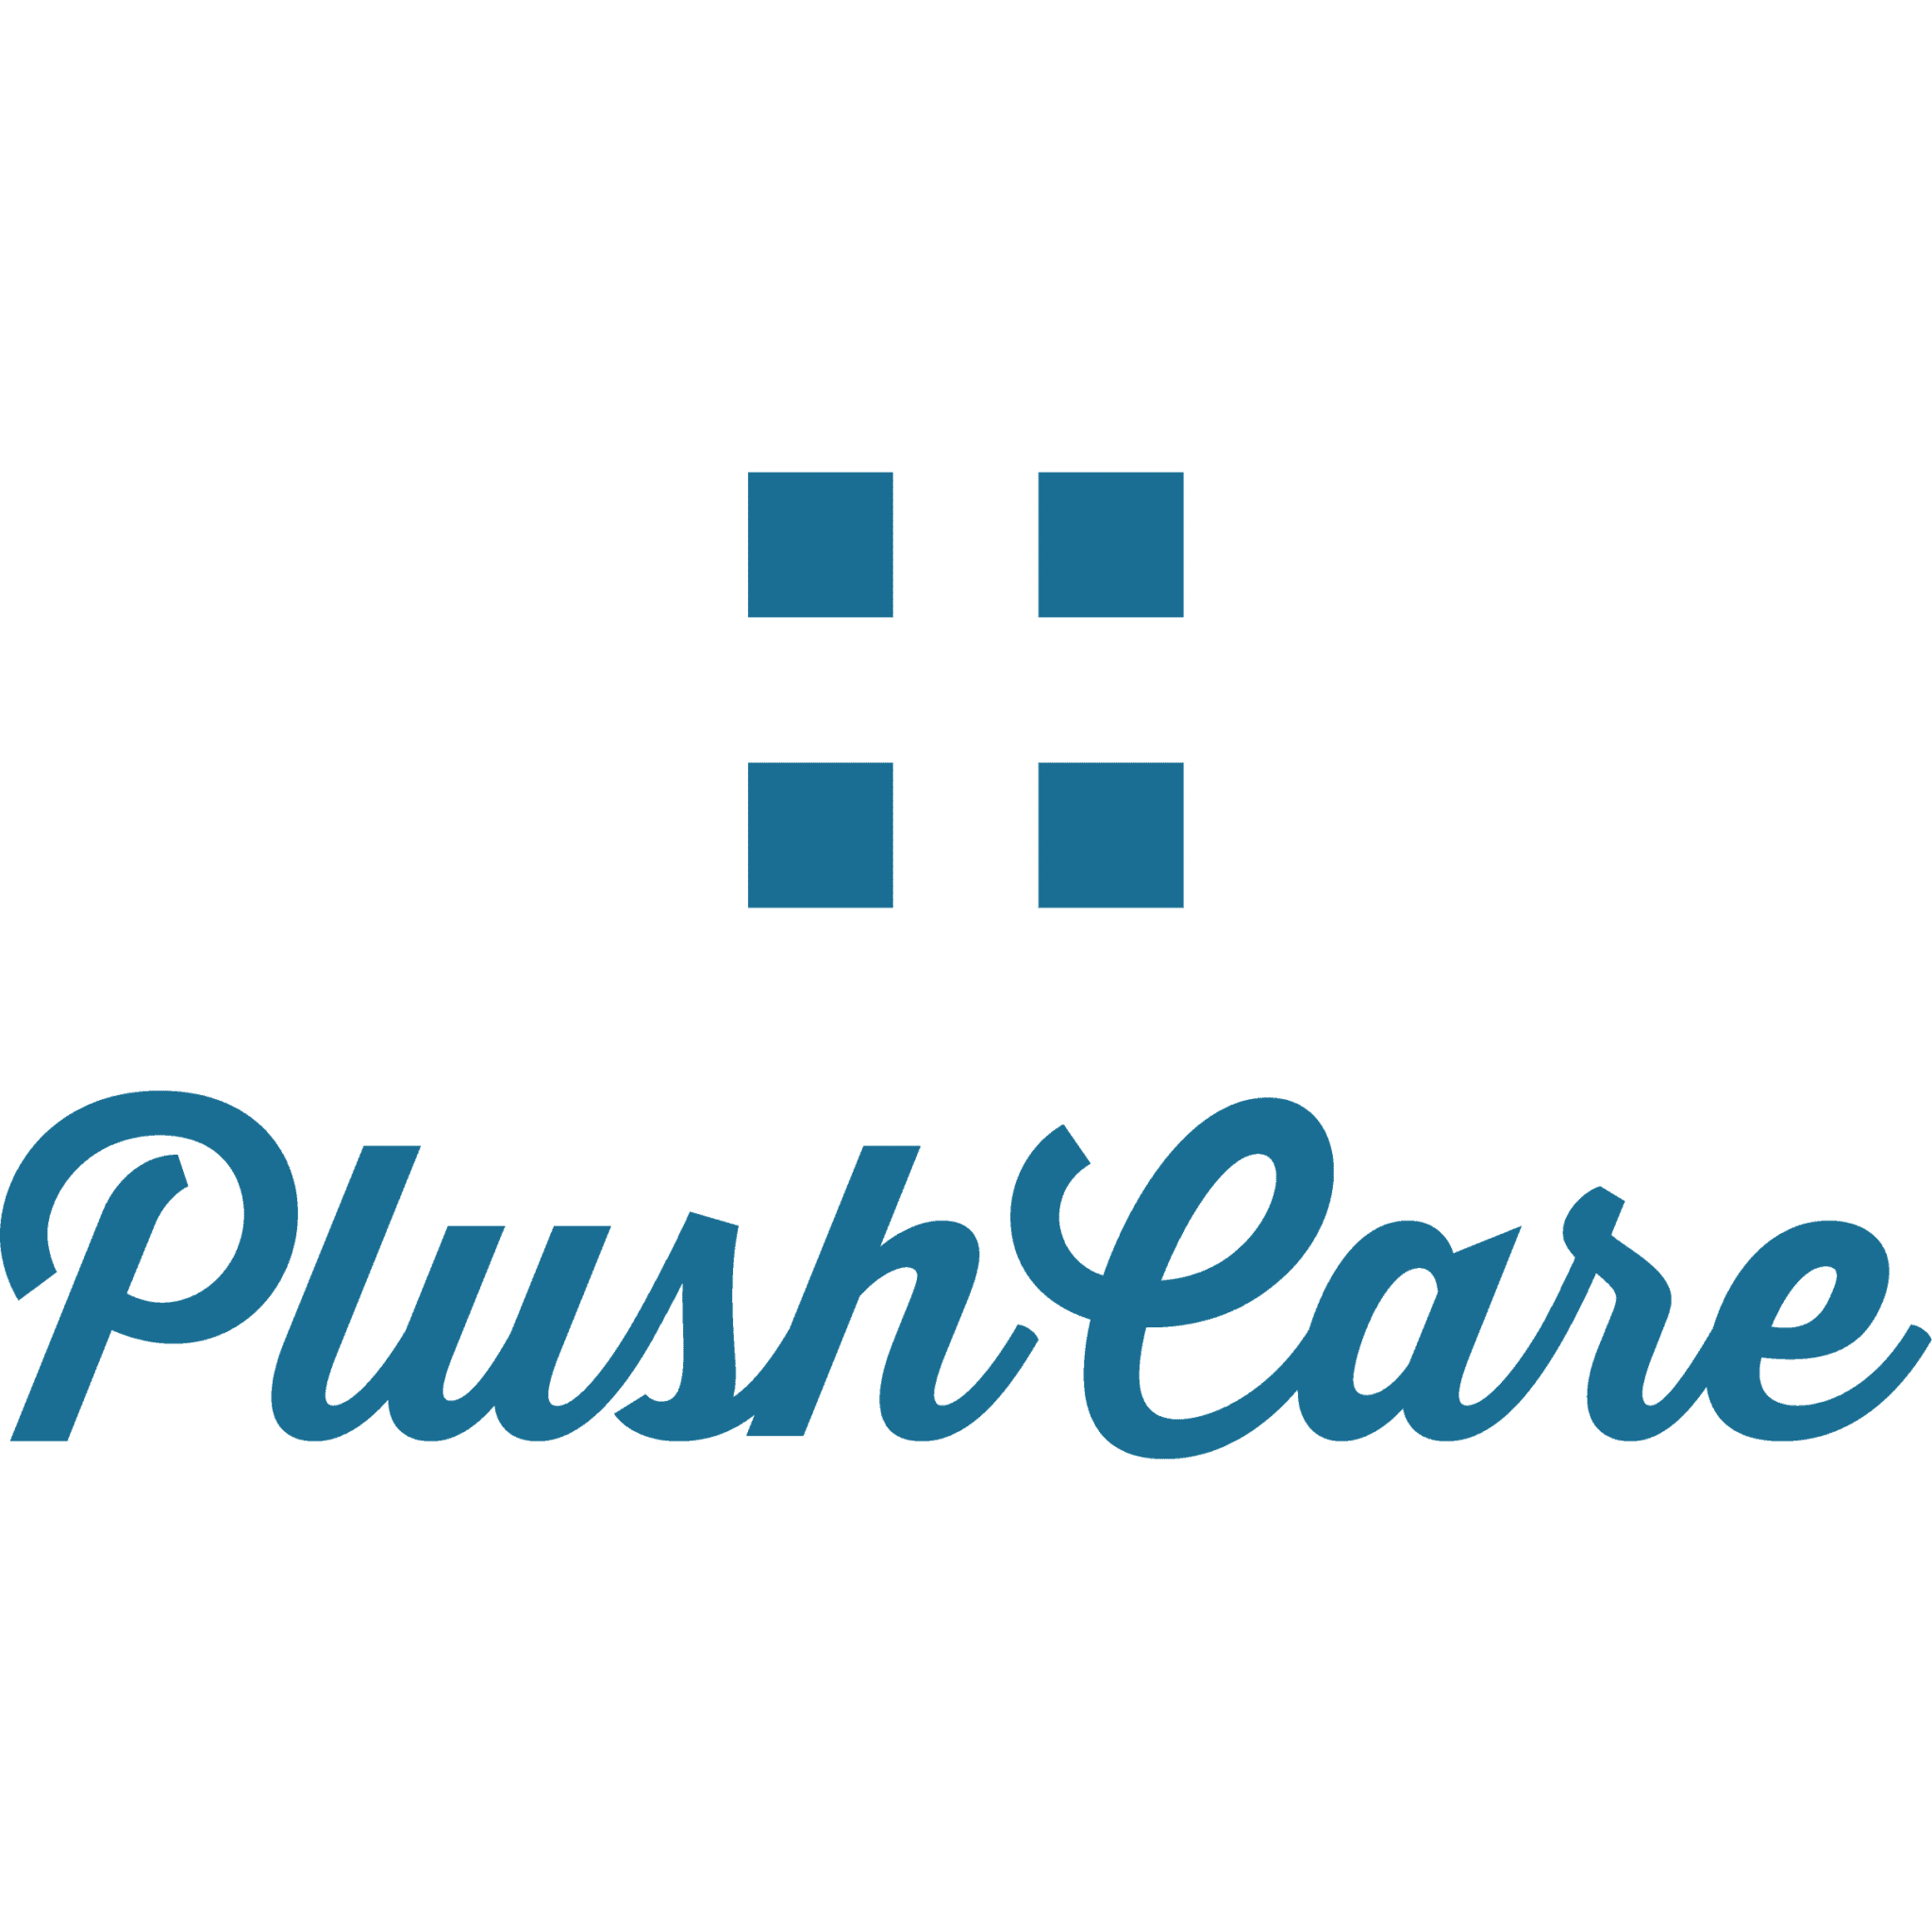 Plushcare is an innovative app that allows you to talk to a doctor from your computer or smartphone. In our Plushcare review, see why we think this is a game changer for healthcare.